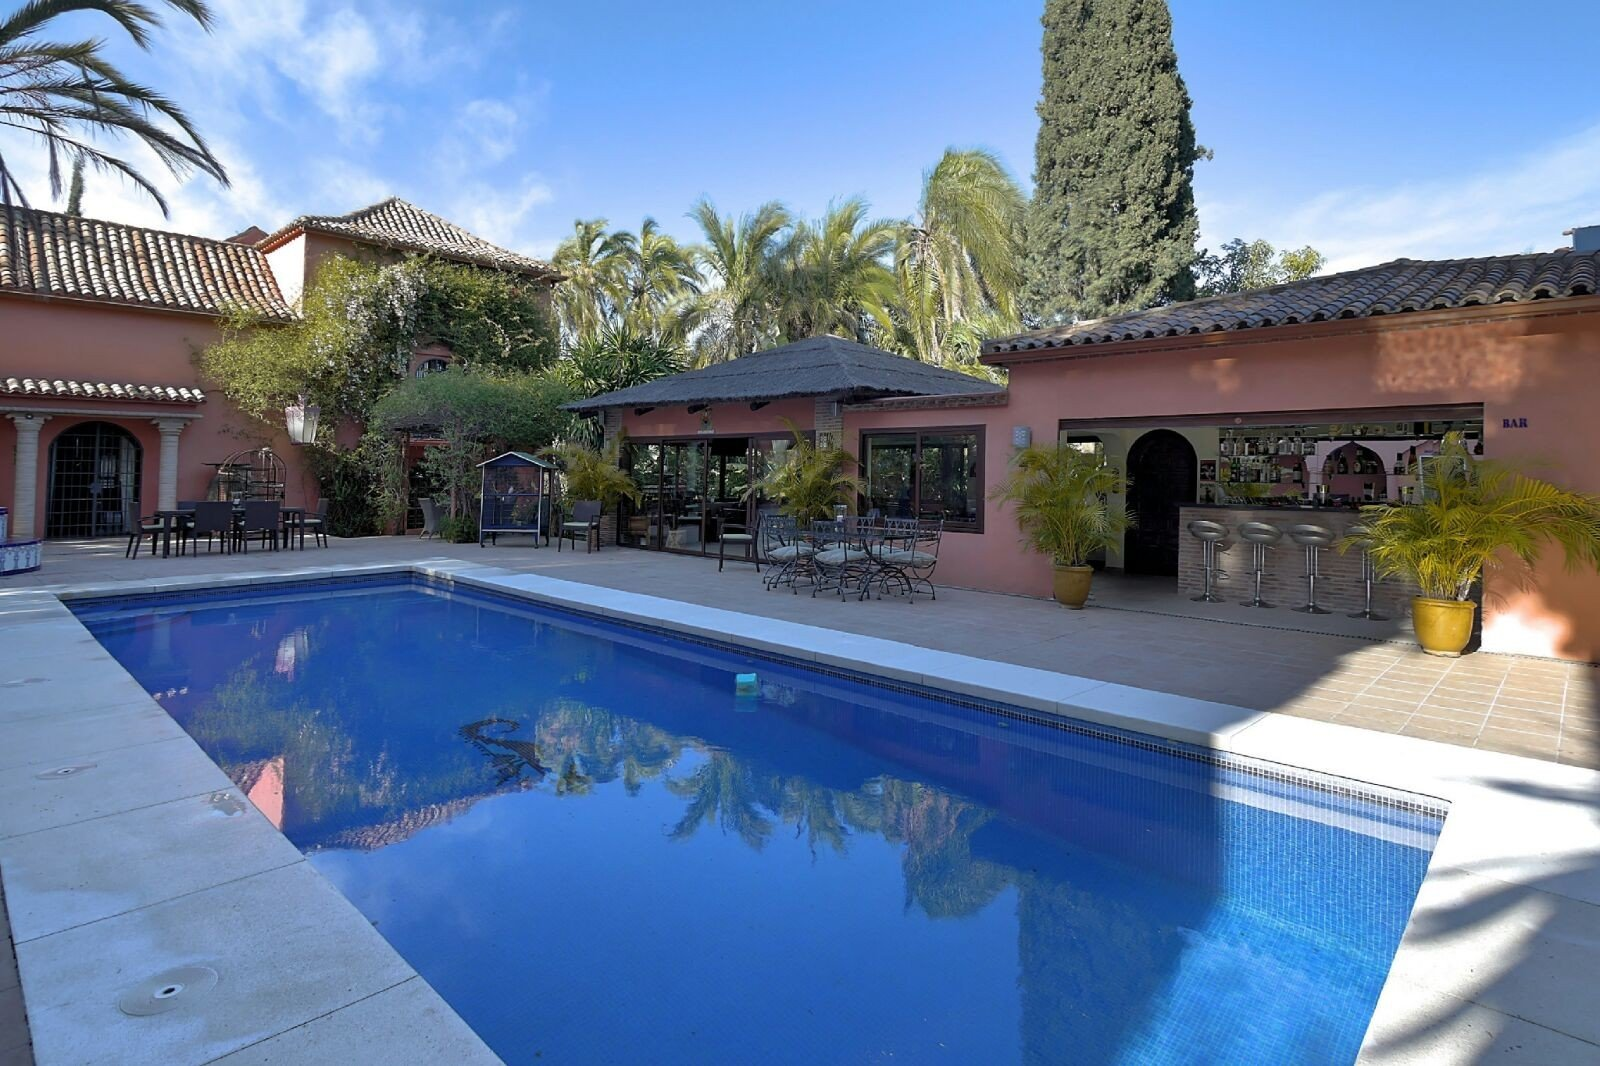 aaa7 bedroom Country House in El Madronal, Benahavis | M313676